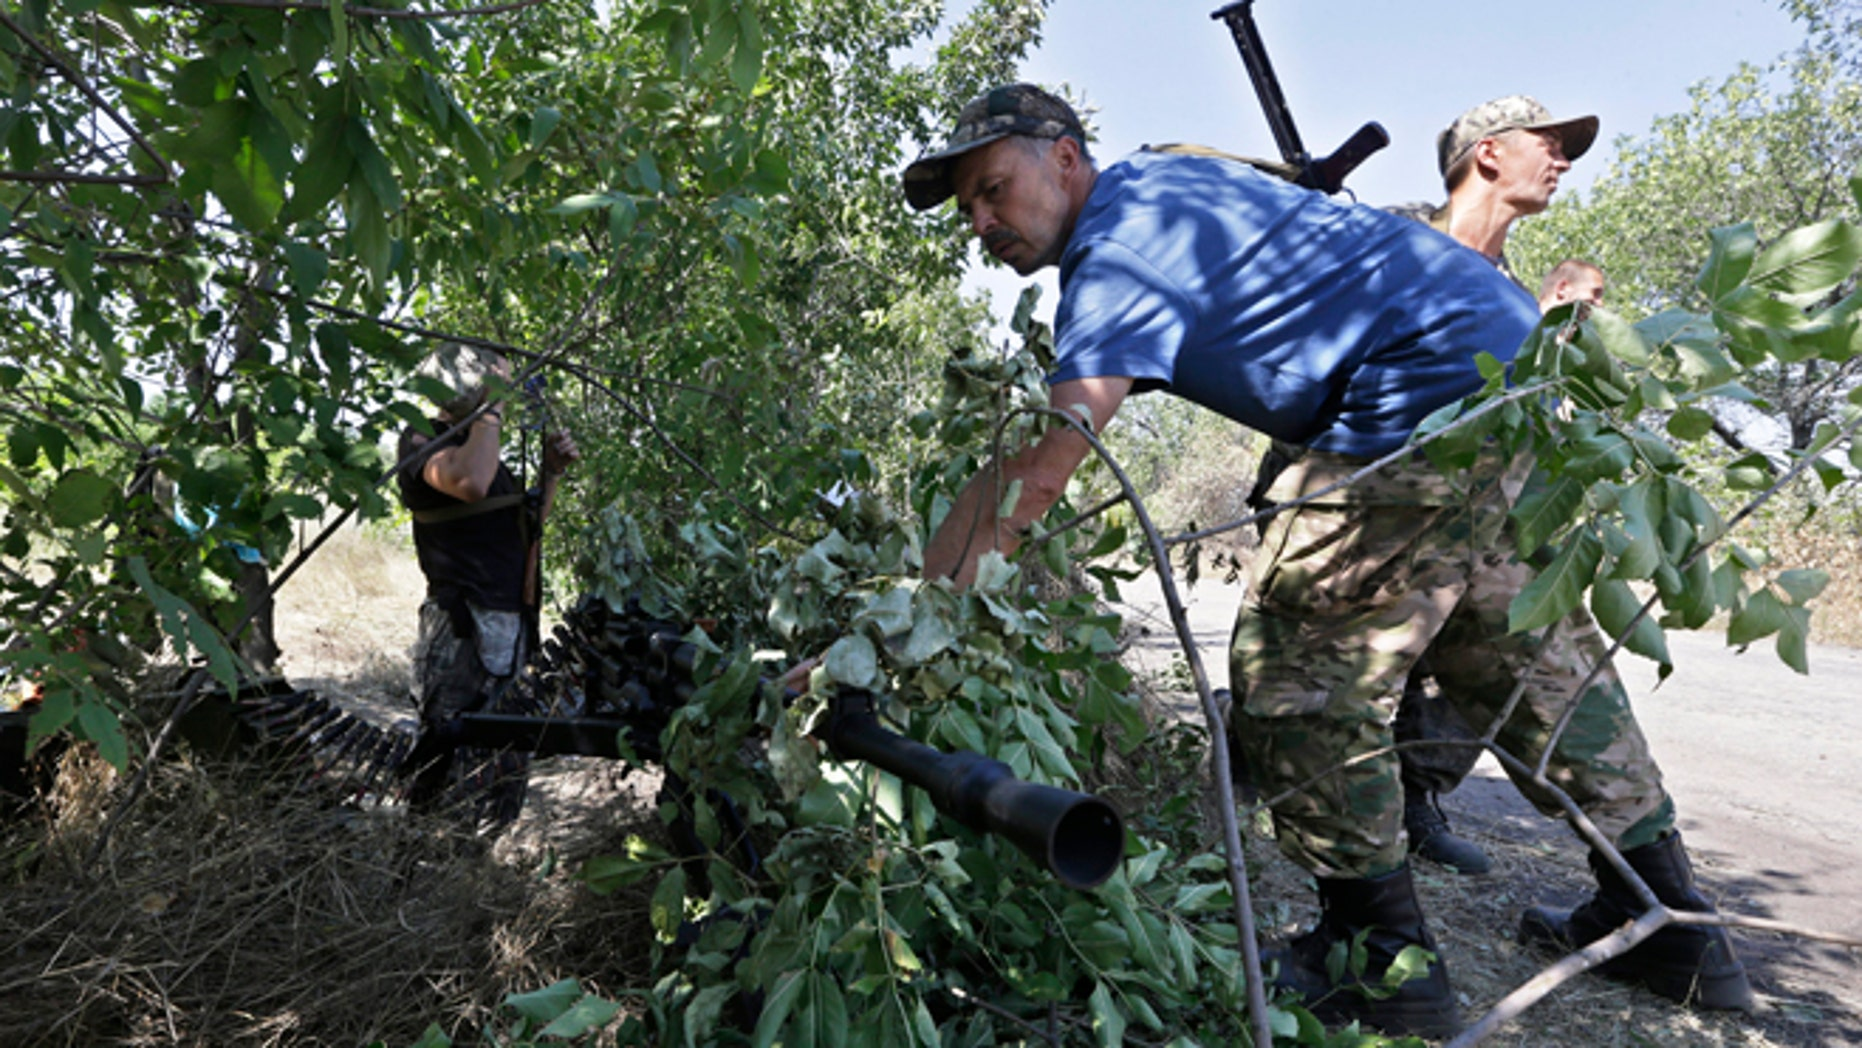 Aug. 15, 2014: A Pro-Russian rebel camouflages a weapon at a position on the frontline near the village of Krasnodon, eastern Ukraine.